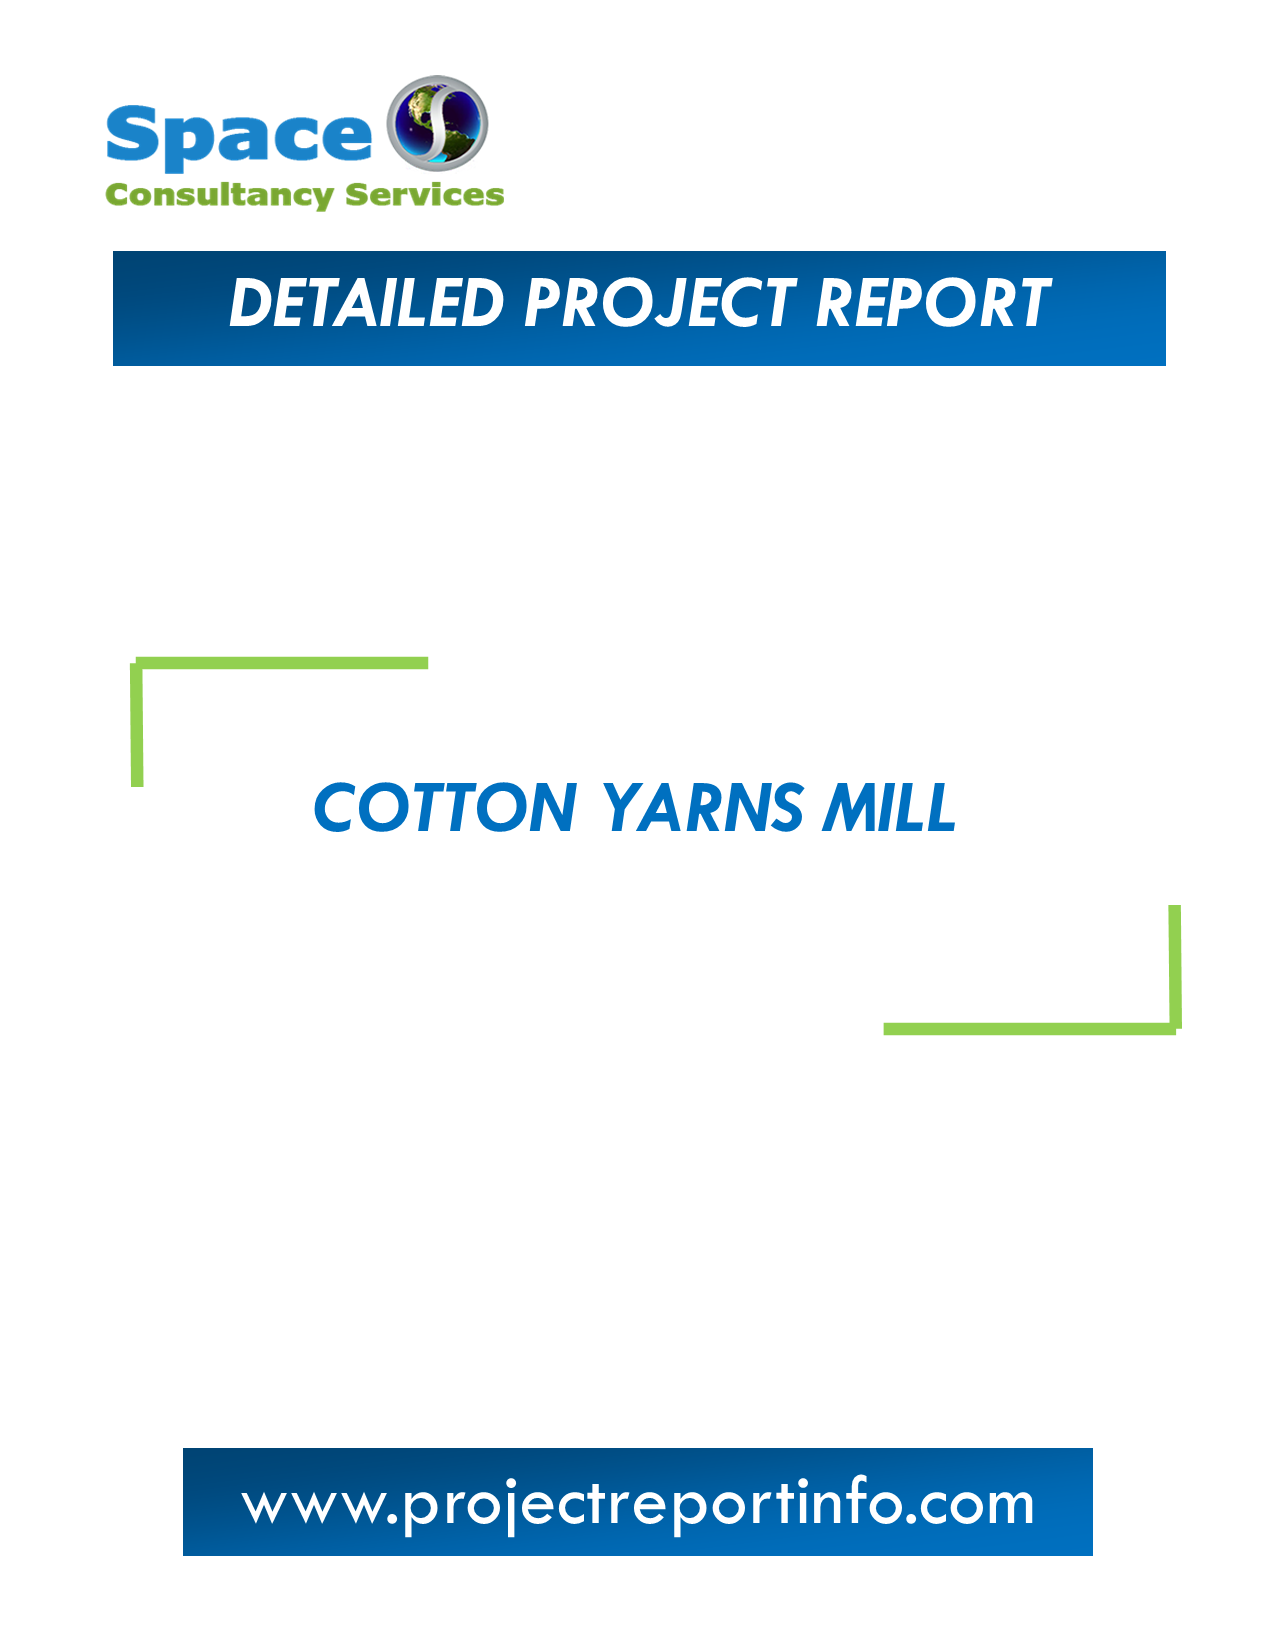 Project Report on Cotton Yarns Mill